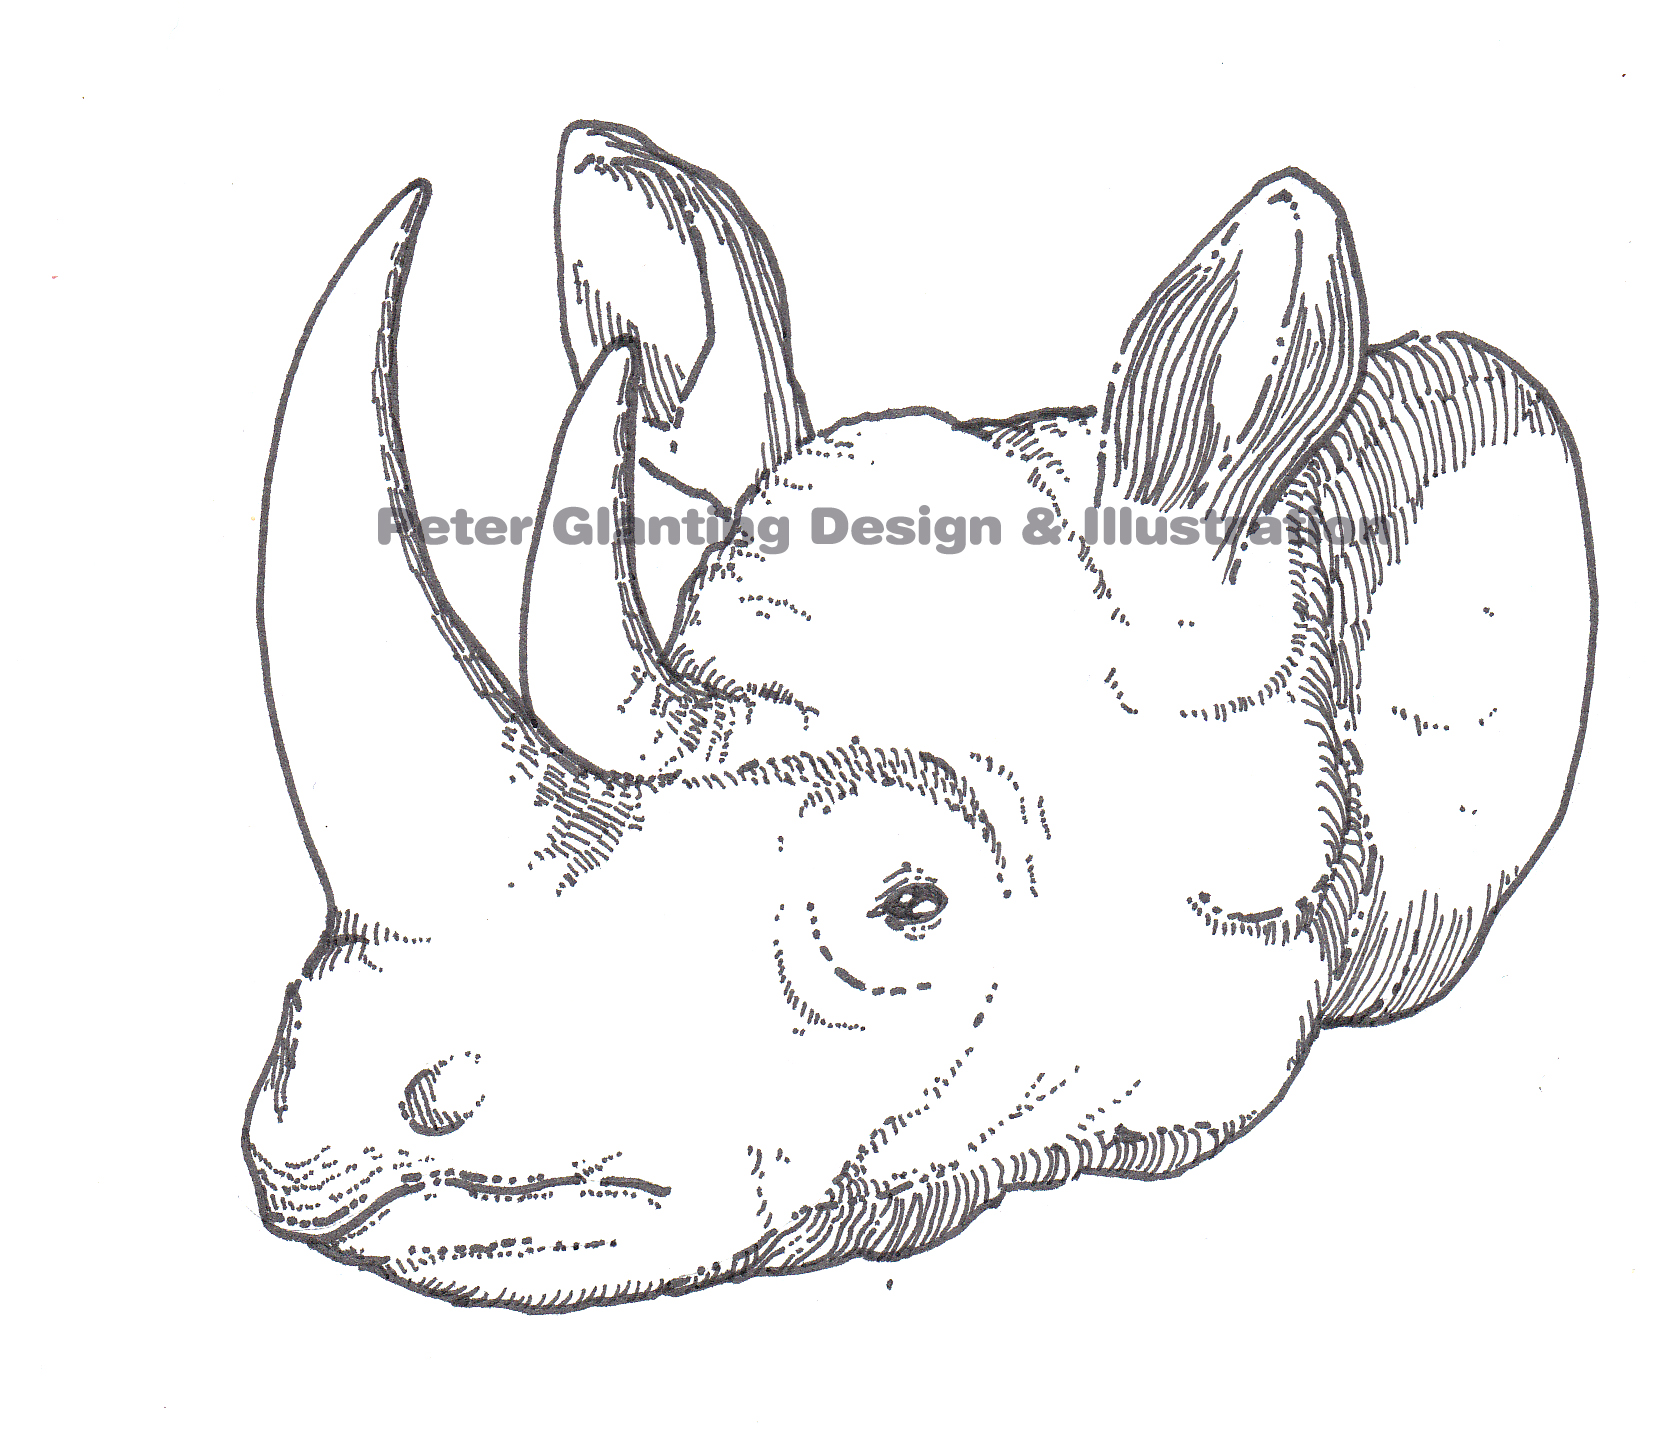 Drawn rhino rhino head Peteglantingdraws head rhino Posted